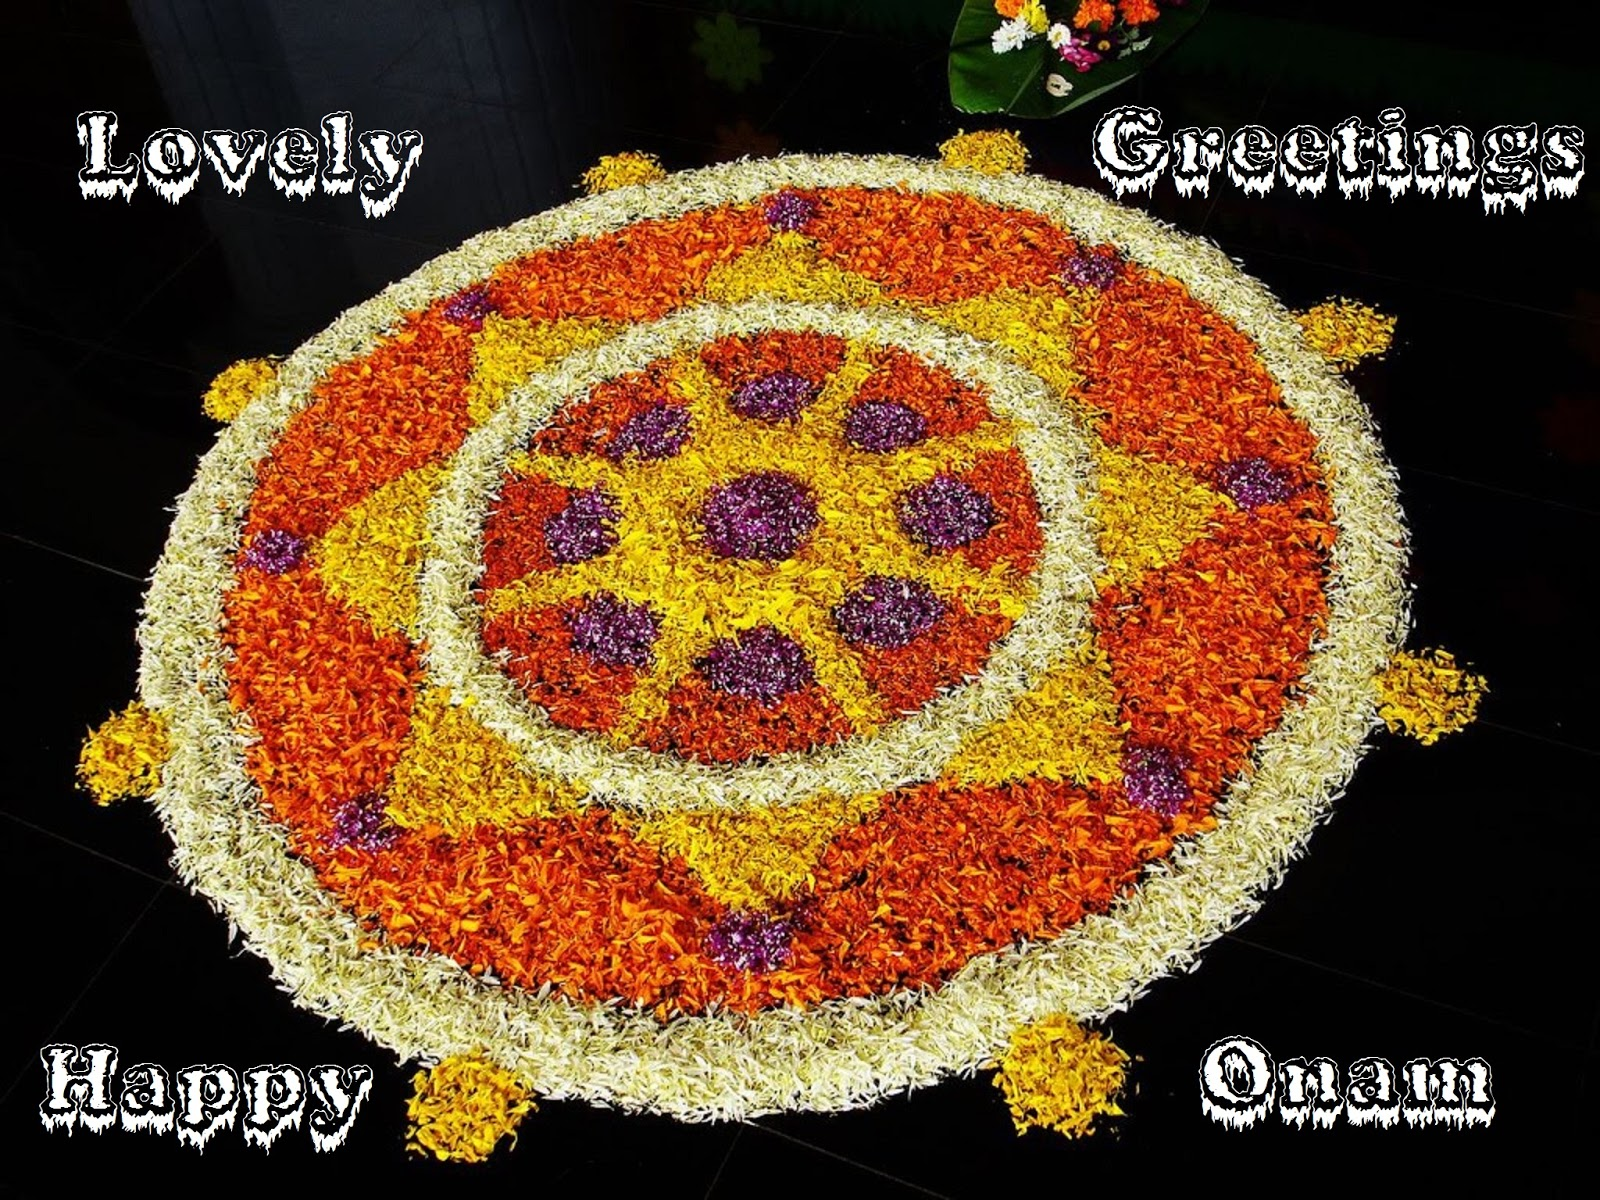 Khushi for life happy onam hd desktop wallpaper photo images see all happy onam wishes photo gallery send e cards images graphics and animation to your beloved ones on your favorite social networking sites like kristyandbryce Image collections